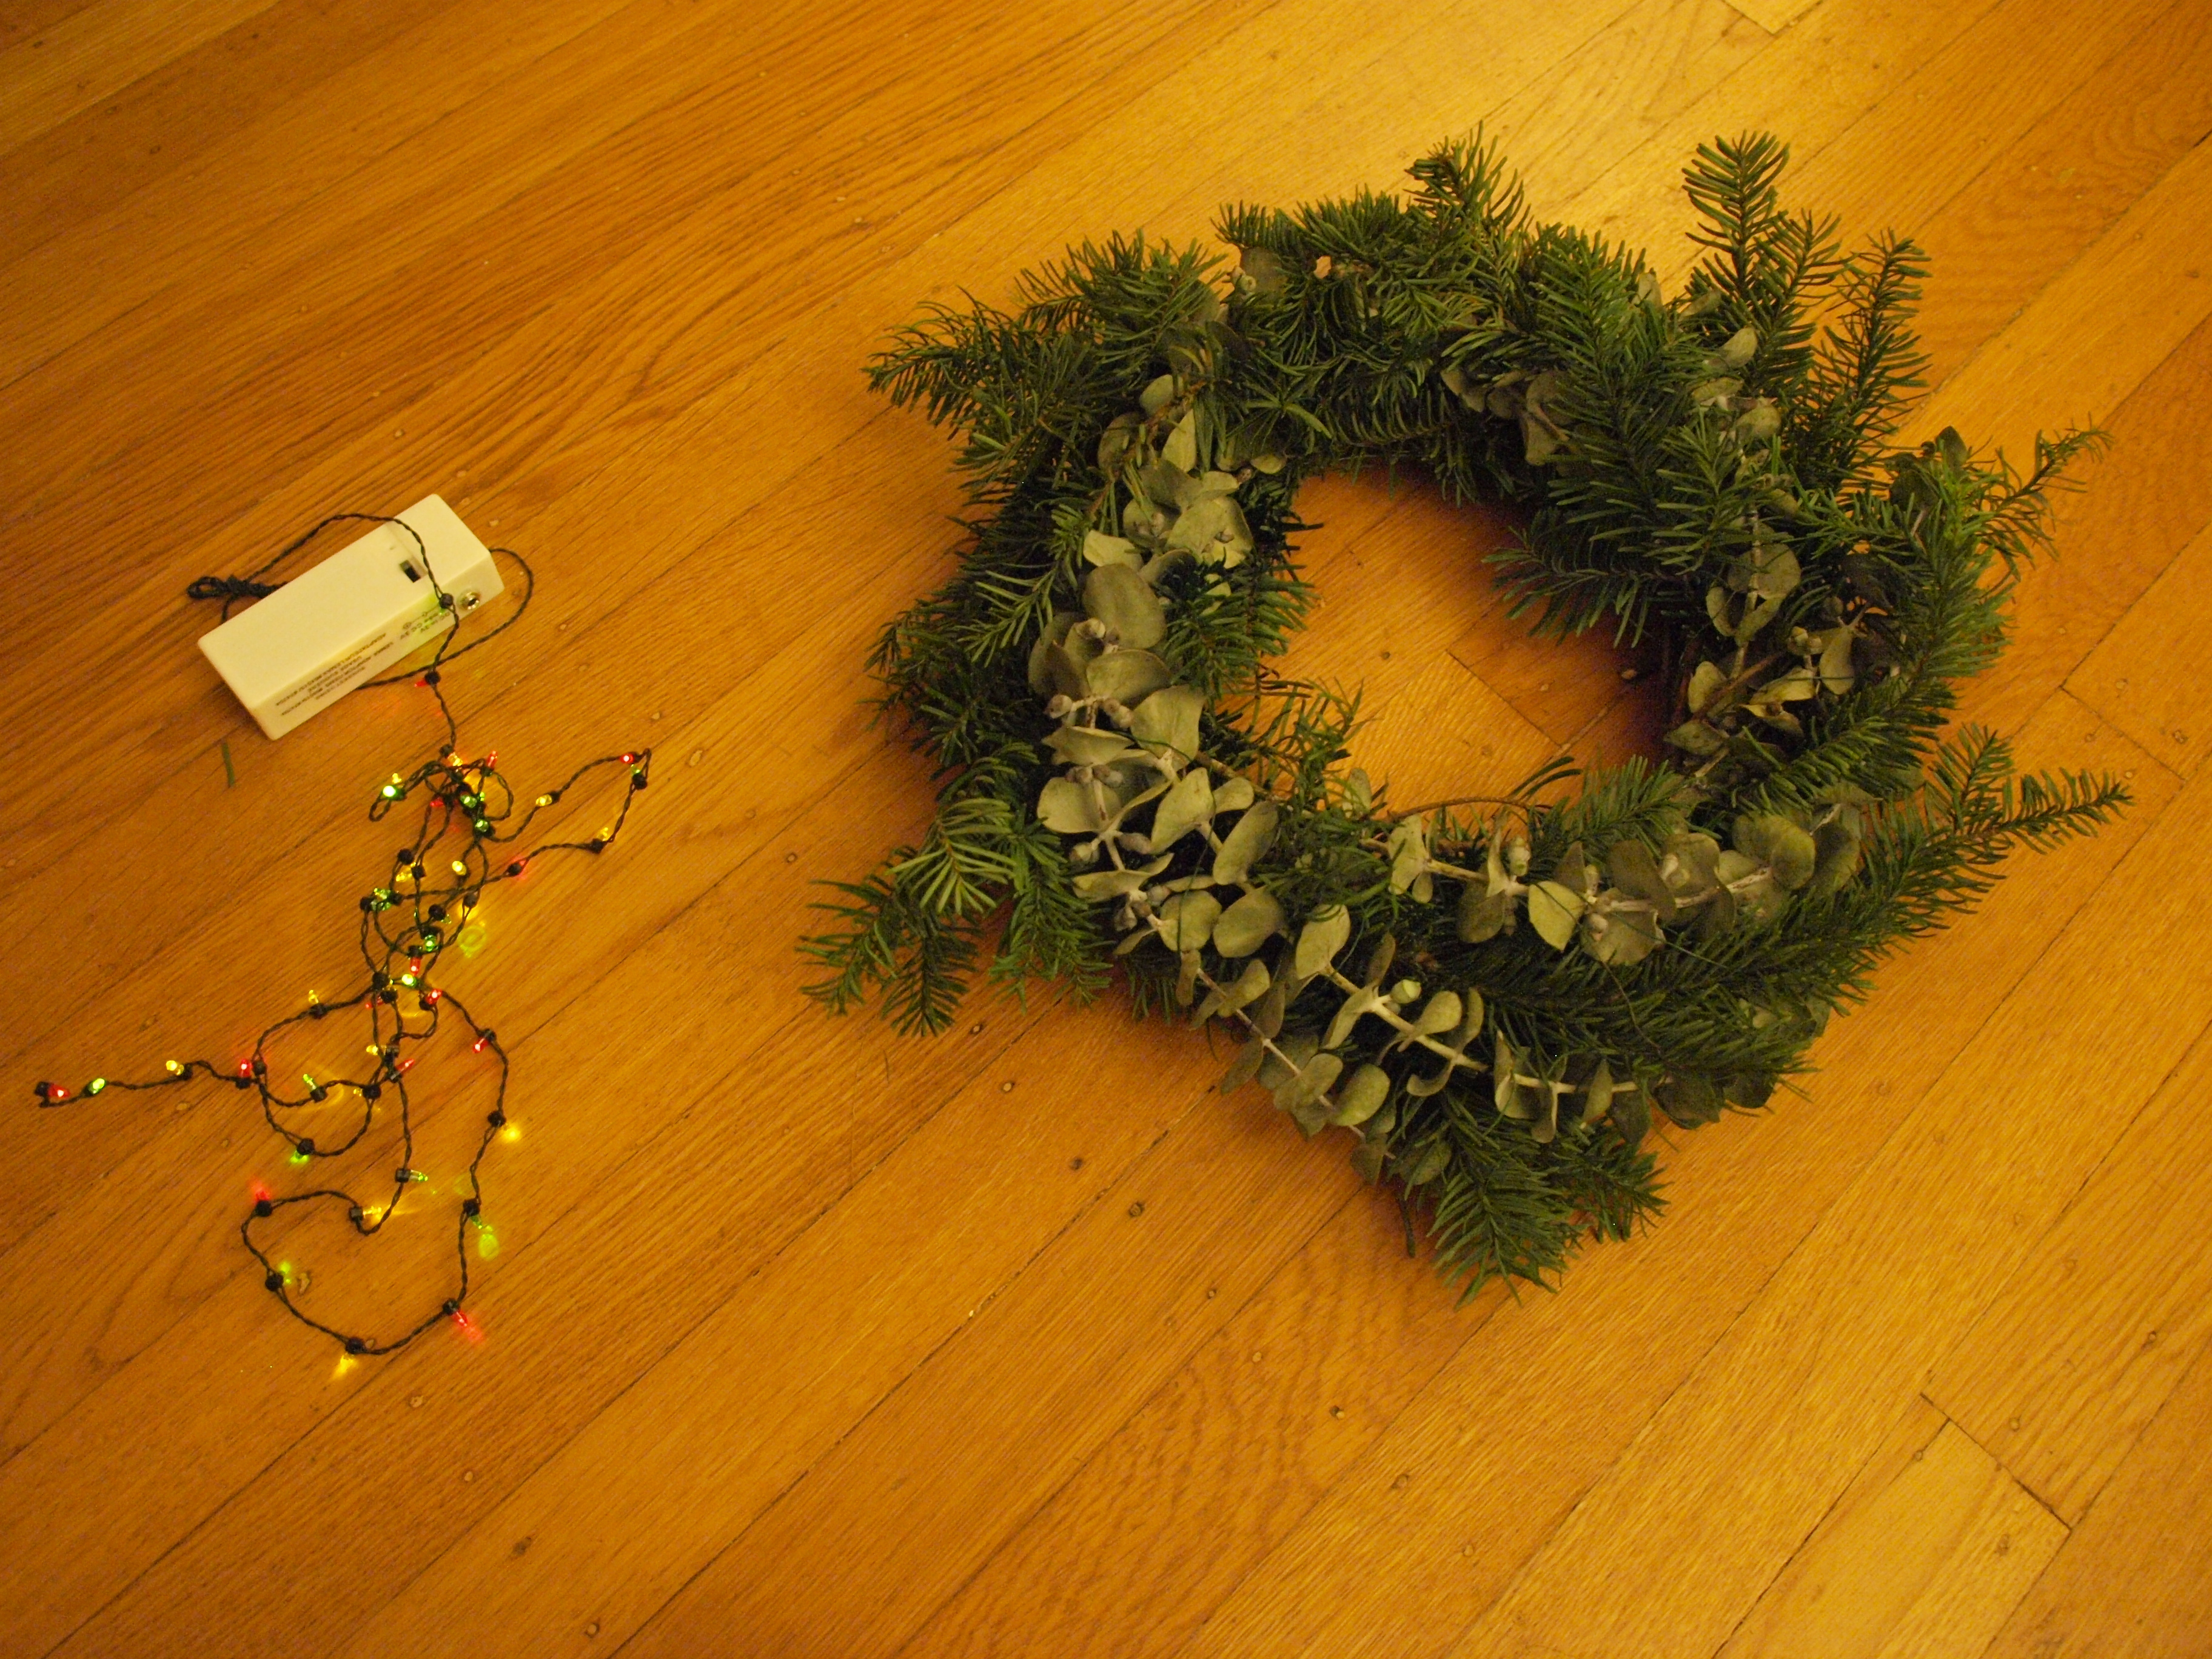 Wreath for Solstice / Yule / Christmas